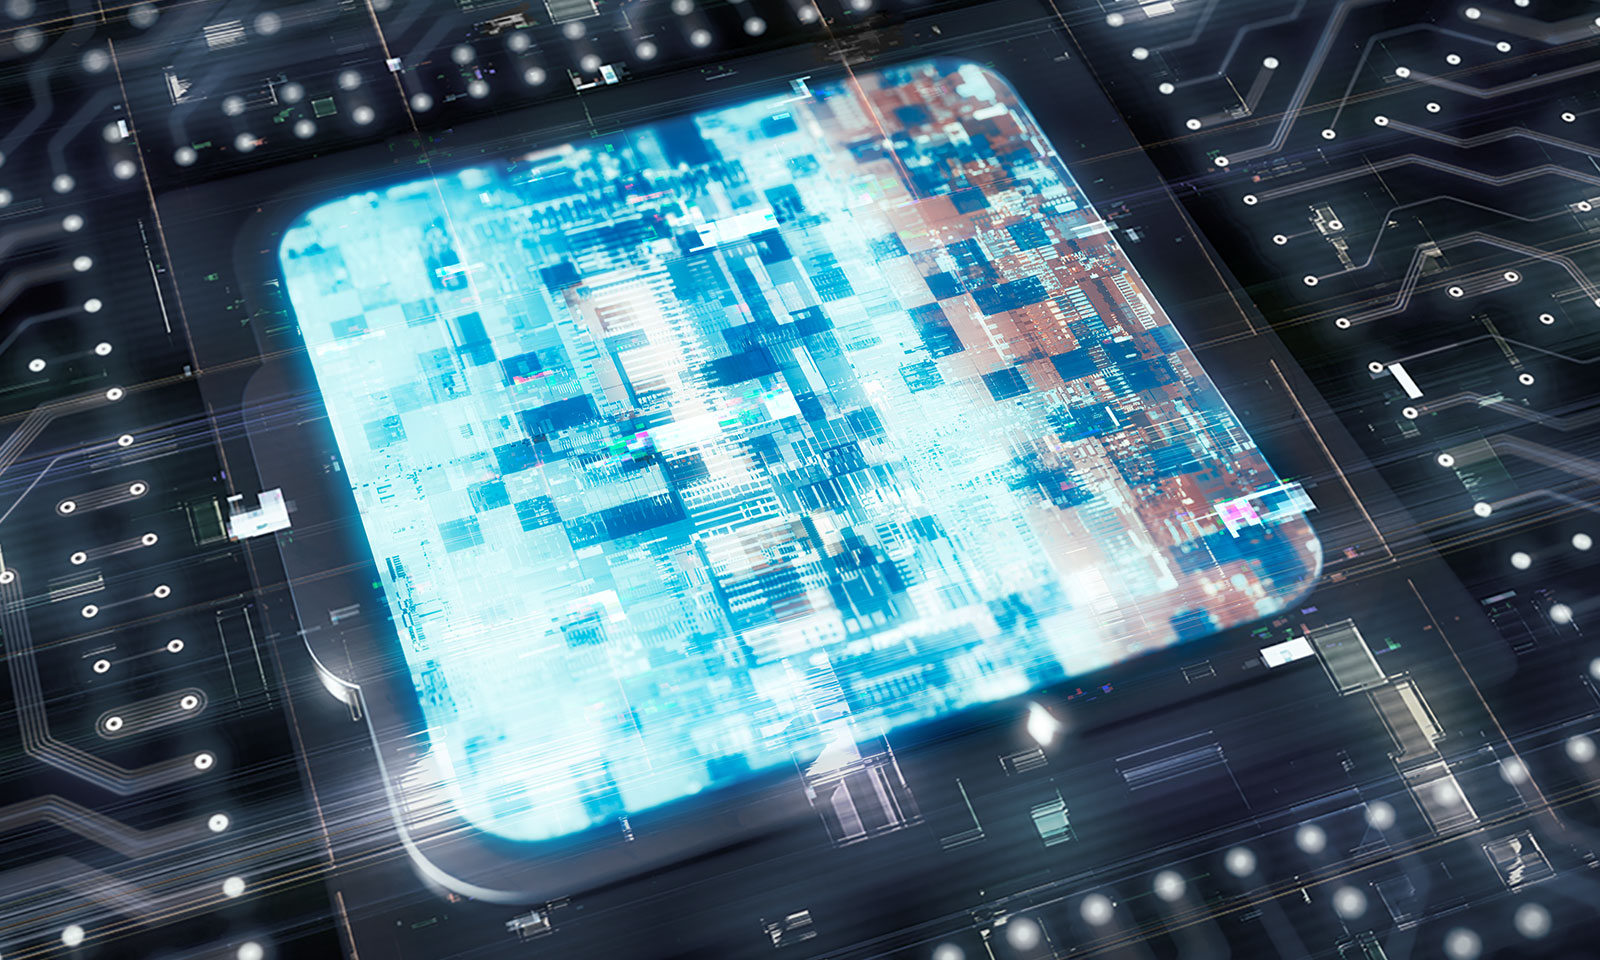 Top 10 Processor to Watch in 2020